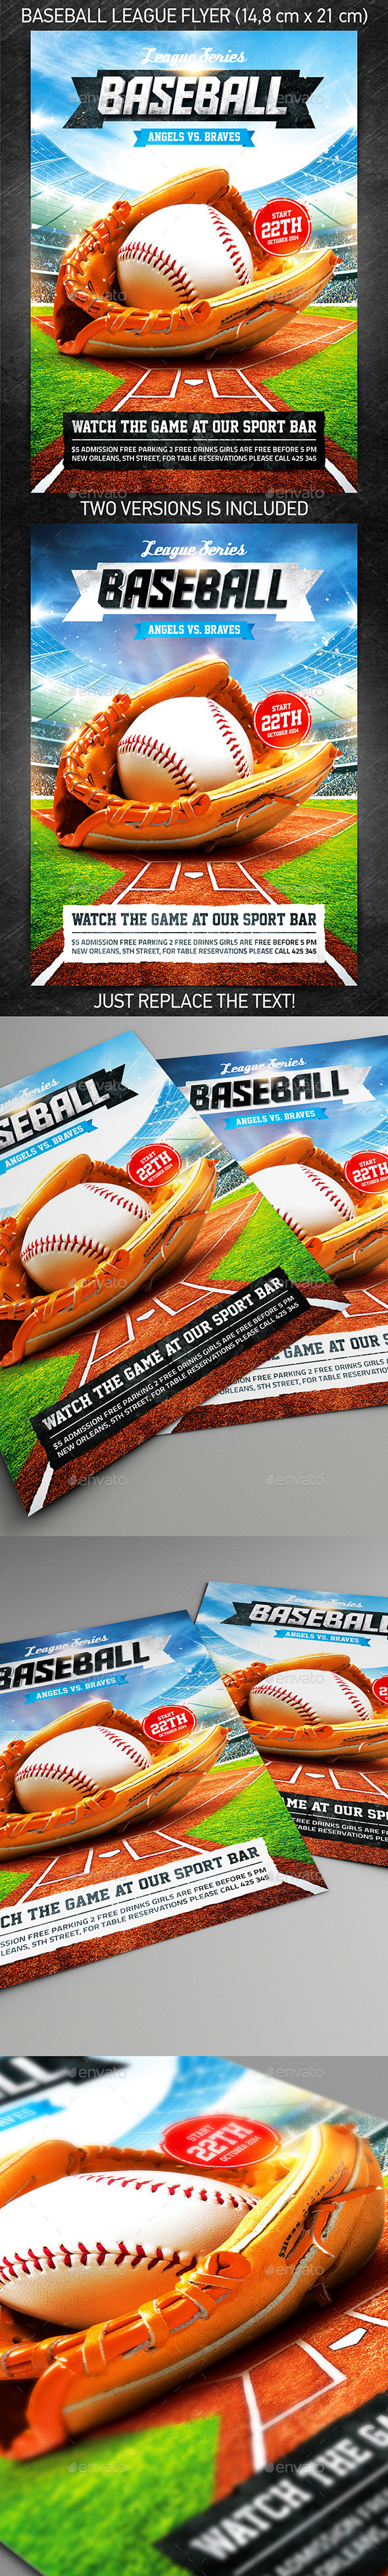 GraphicRiver Baseball League Series Flyer 8860300